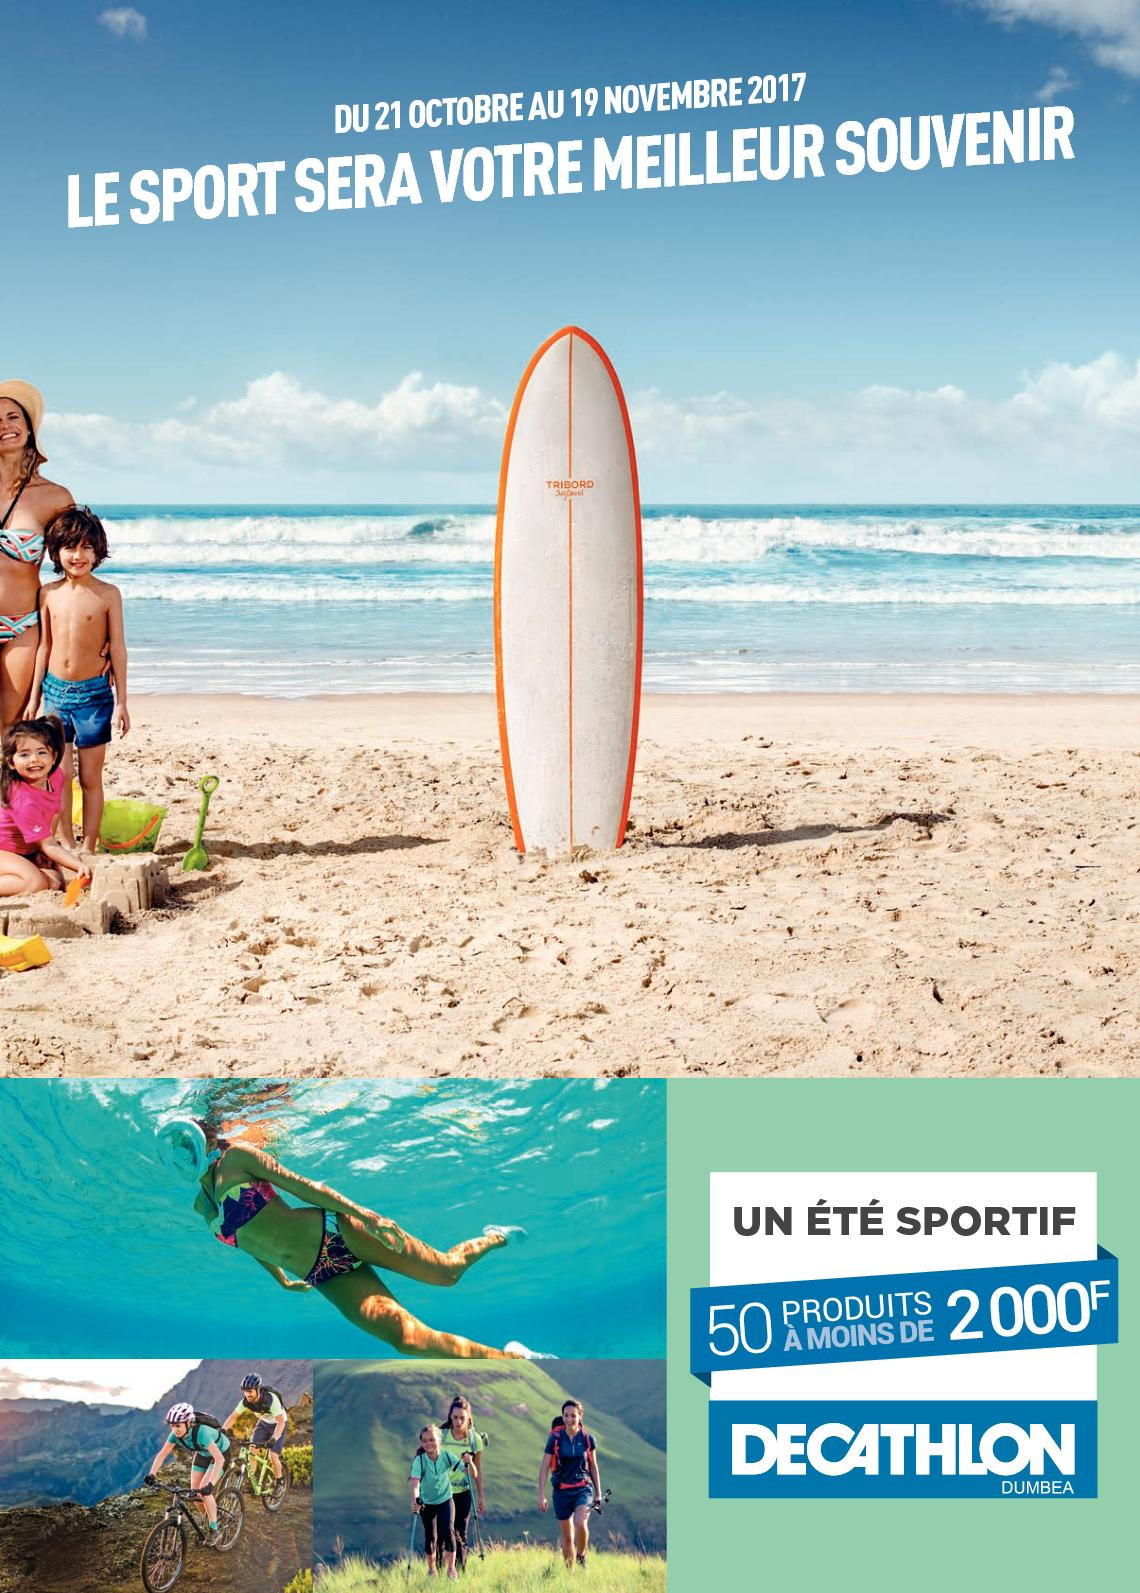 Bain De Soleil Decathlon Calaméo Decathlon Dumbéa Catalogue Eté Du 21 Octobre Au 19